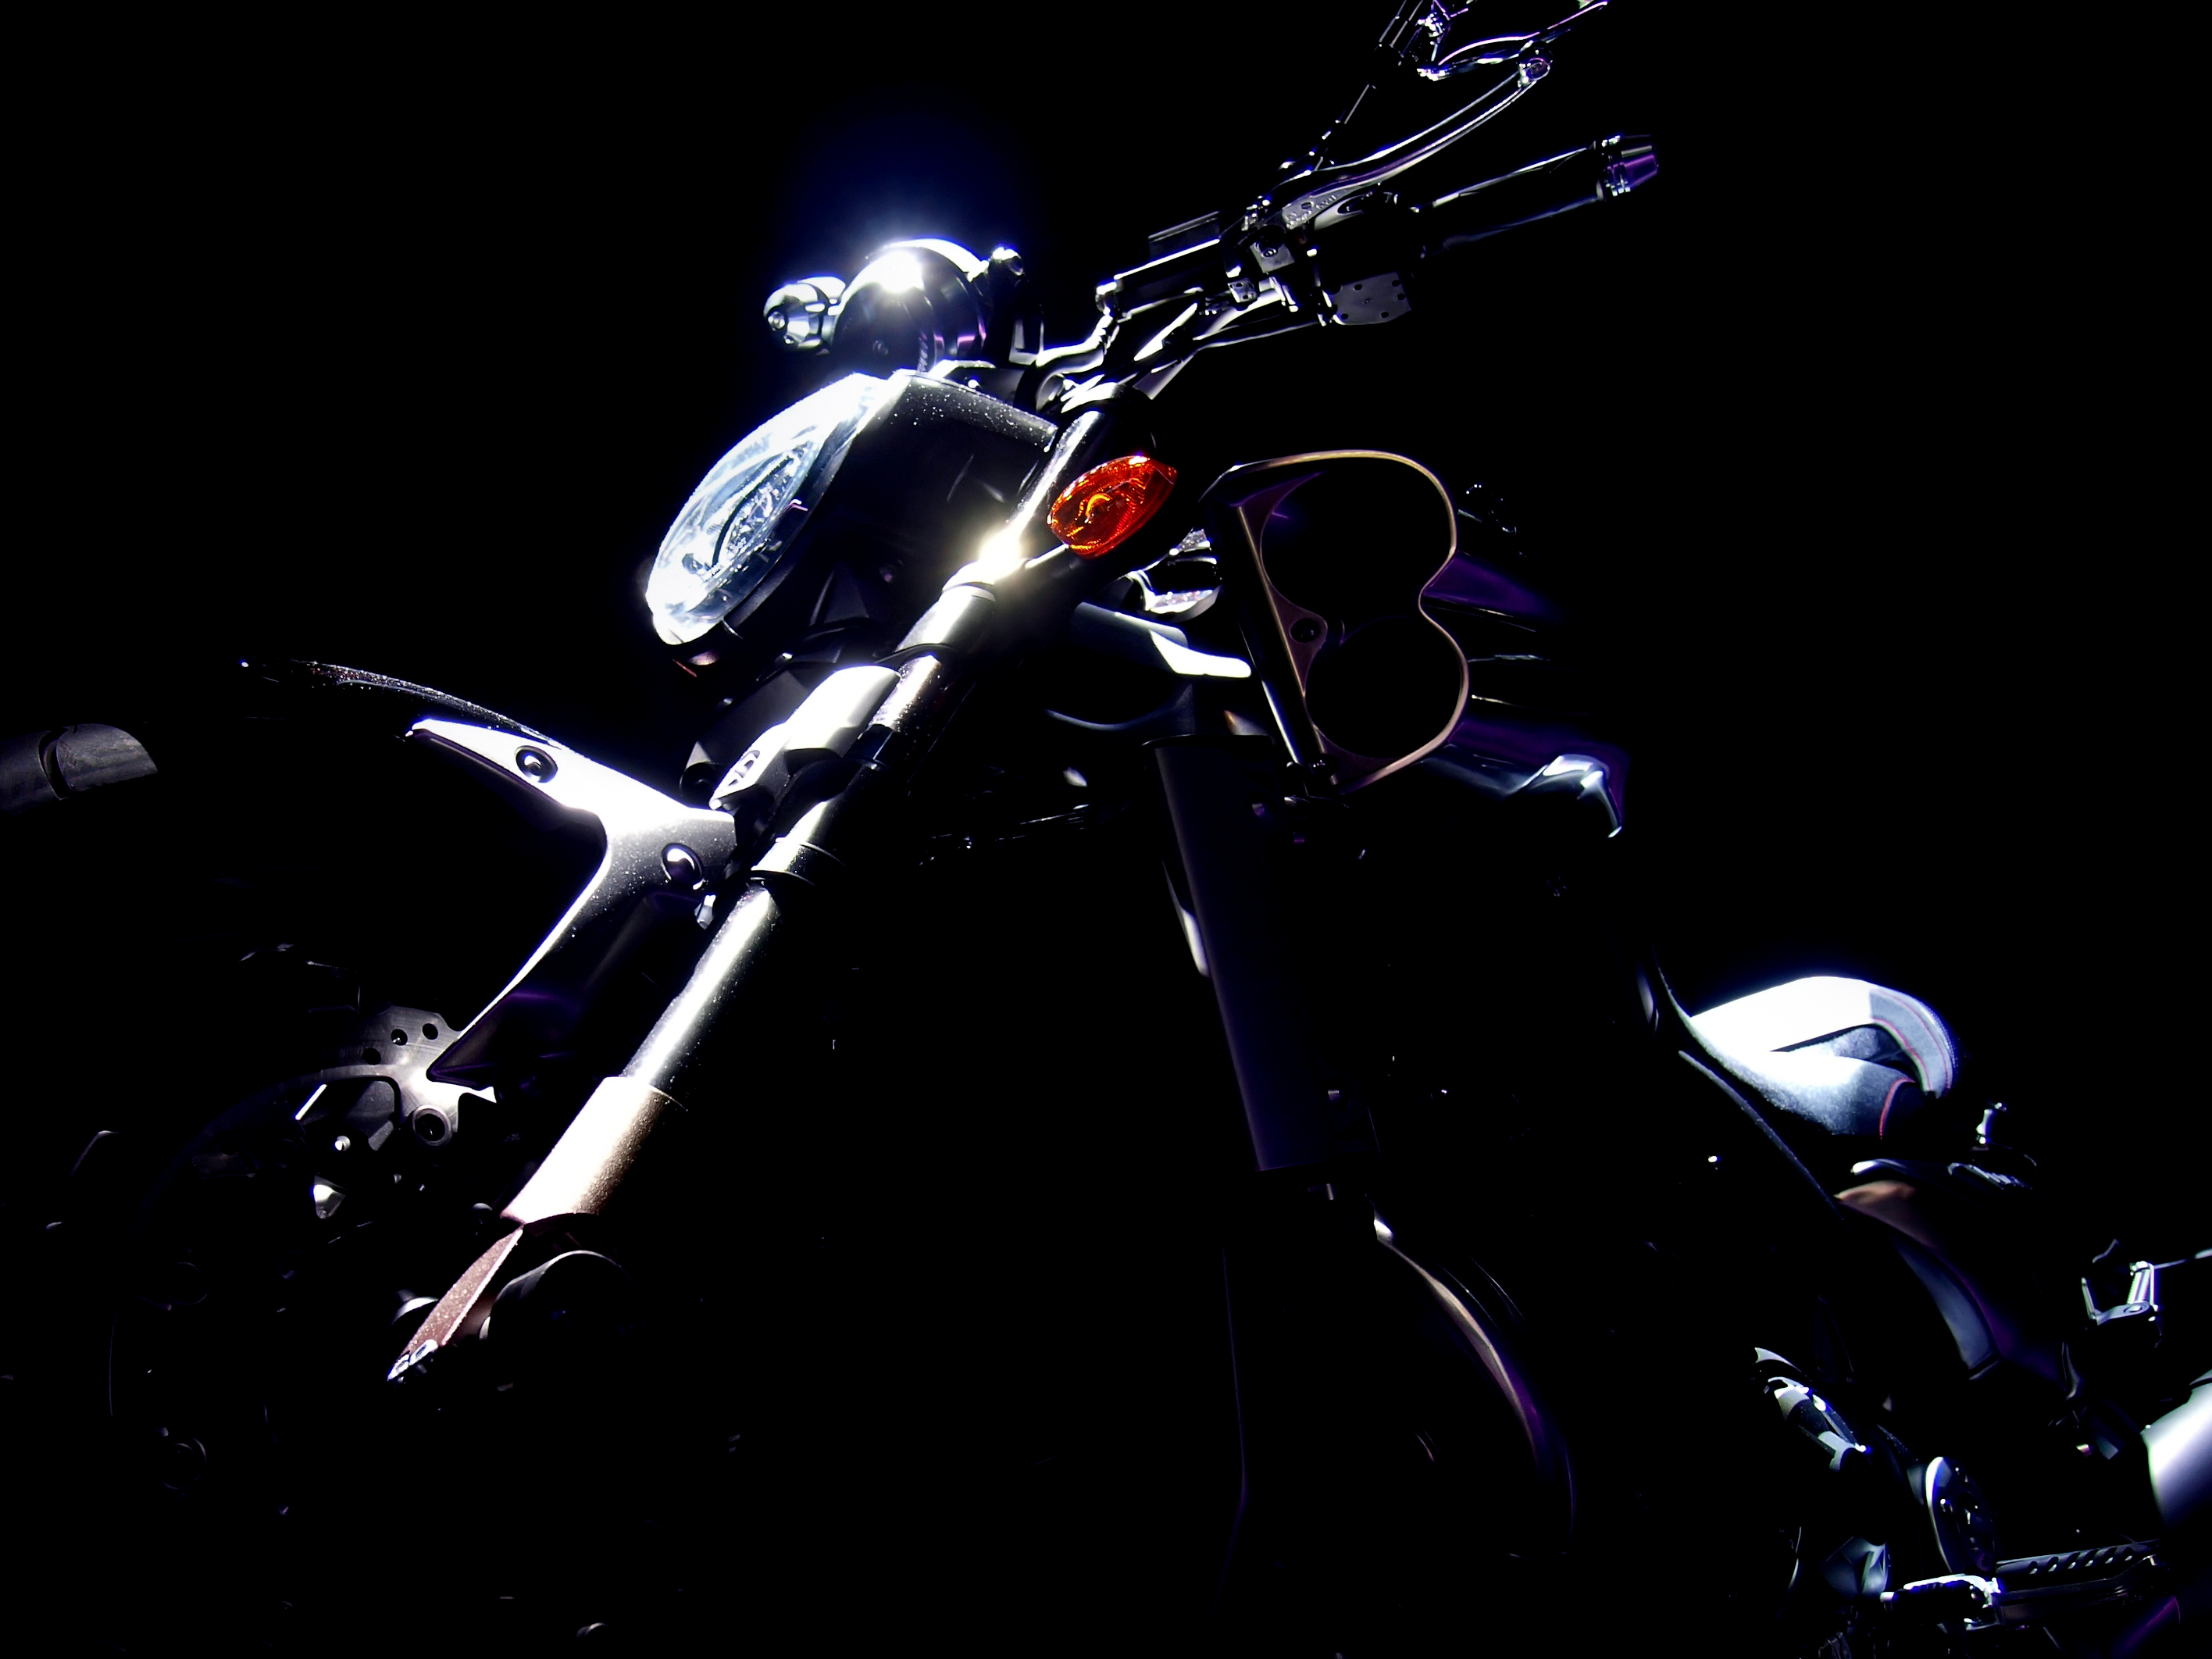 Motorcycle-Dark-Background